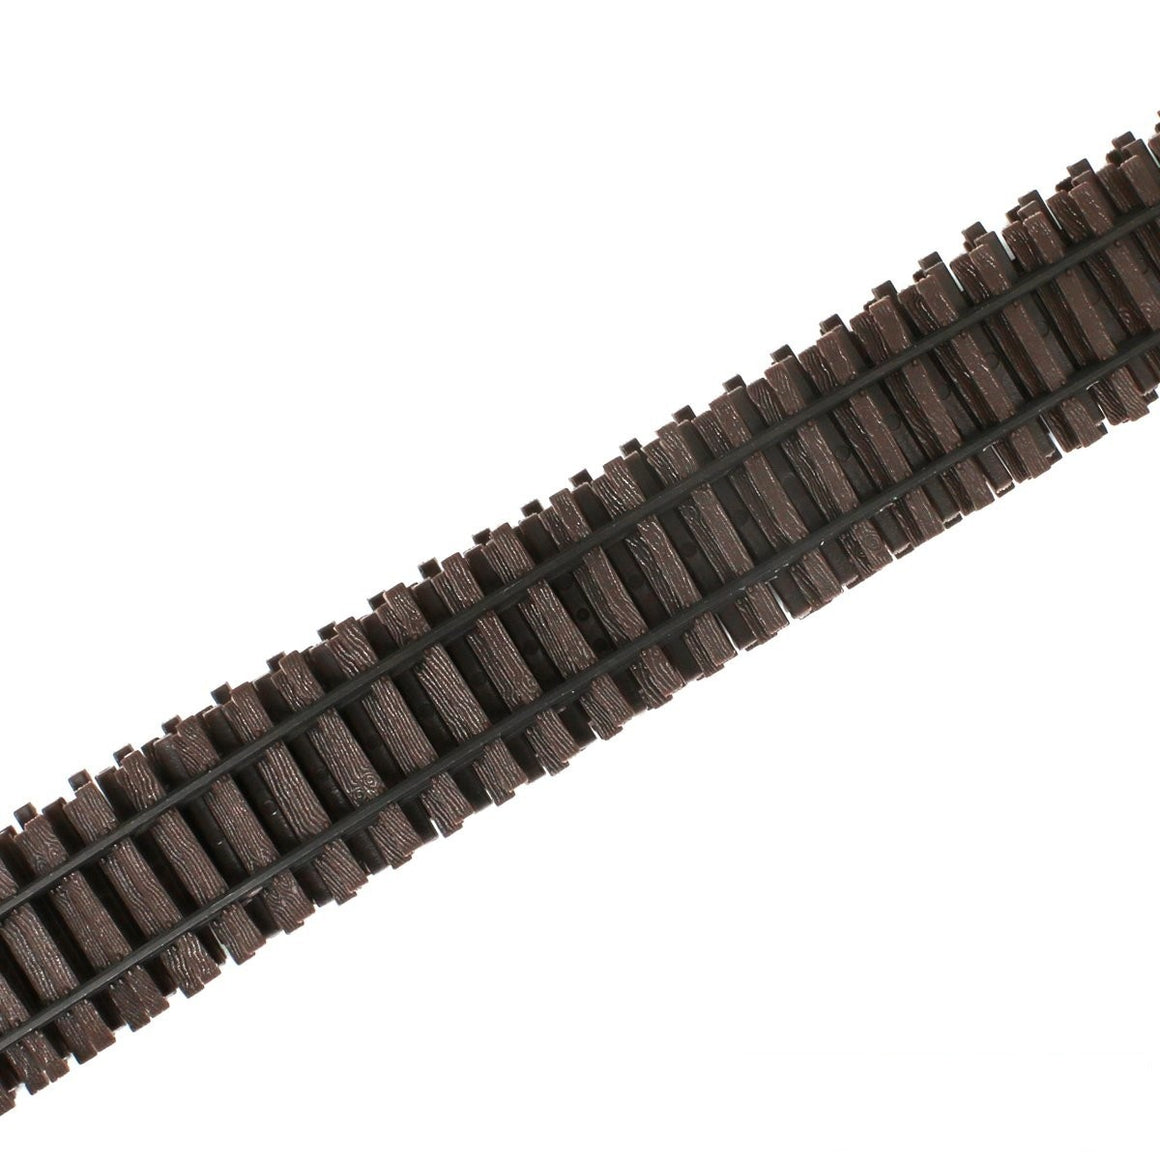 HOn3 Gauge: 3' Weathered Narrow Gauge Gauge Flex-Track - Code 55 (6 Pack)